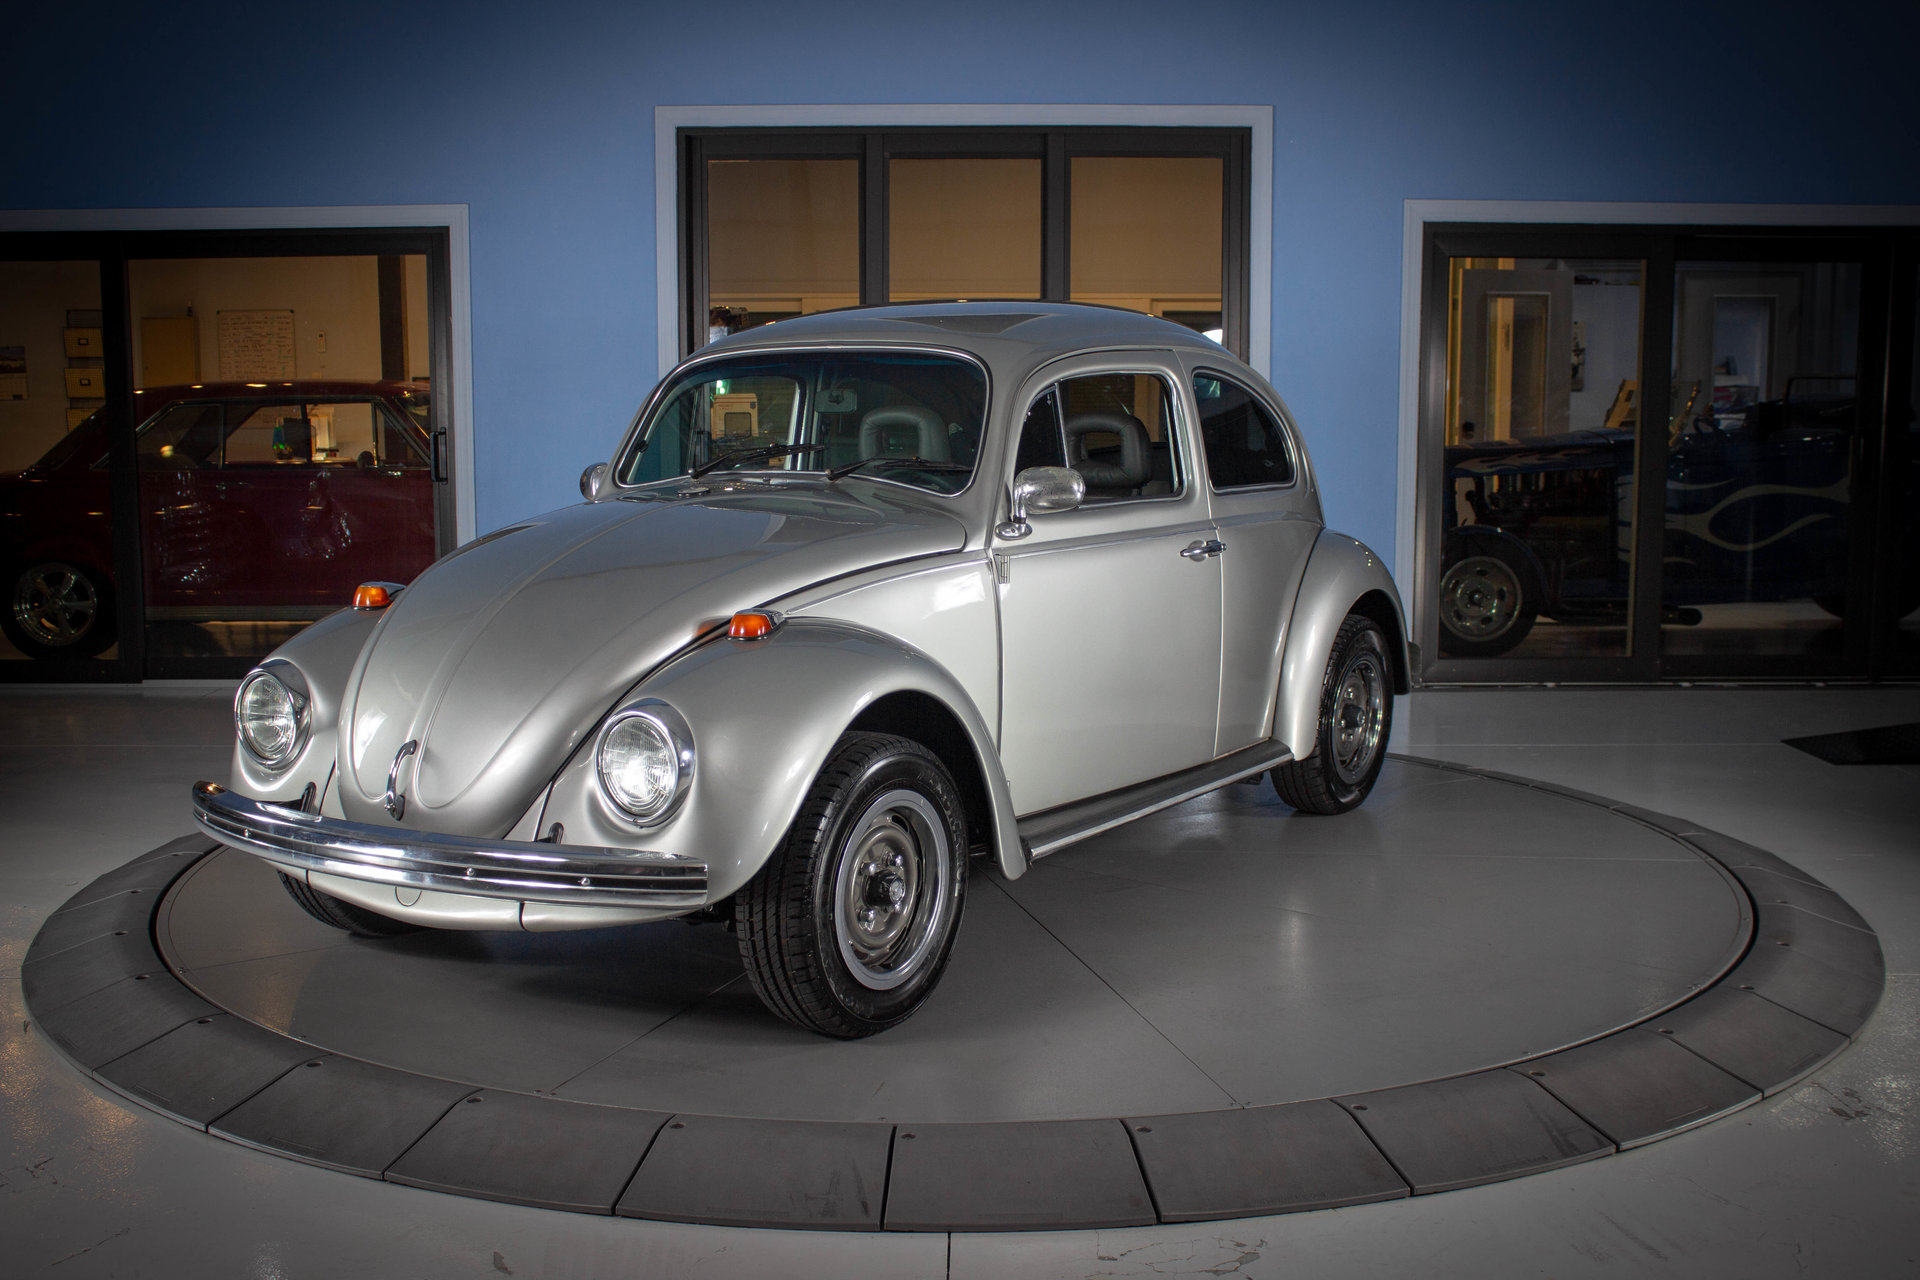 1974 volkswagen beetle classic cars used cars for sale in tampa fl. Black Bedroom Furniture Sets. Home Design Ideas